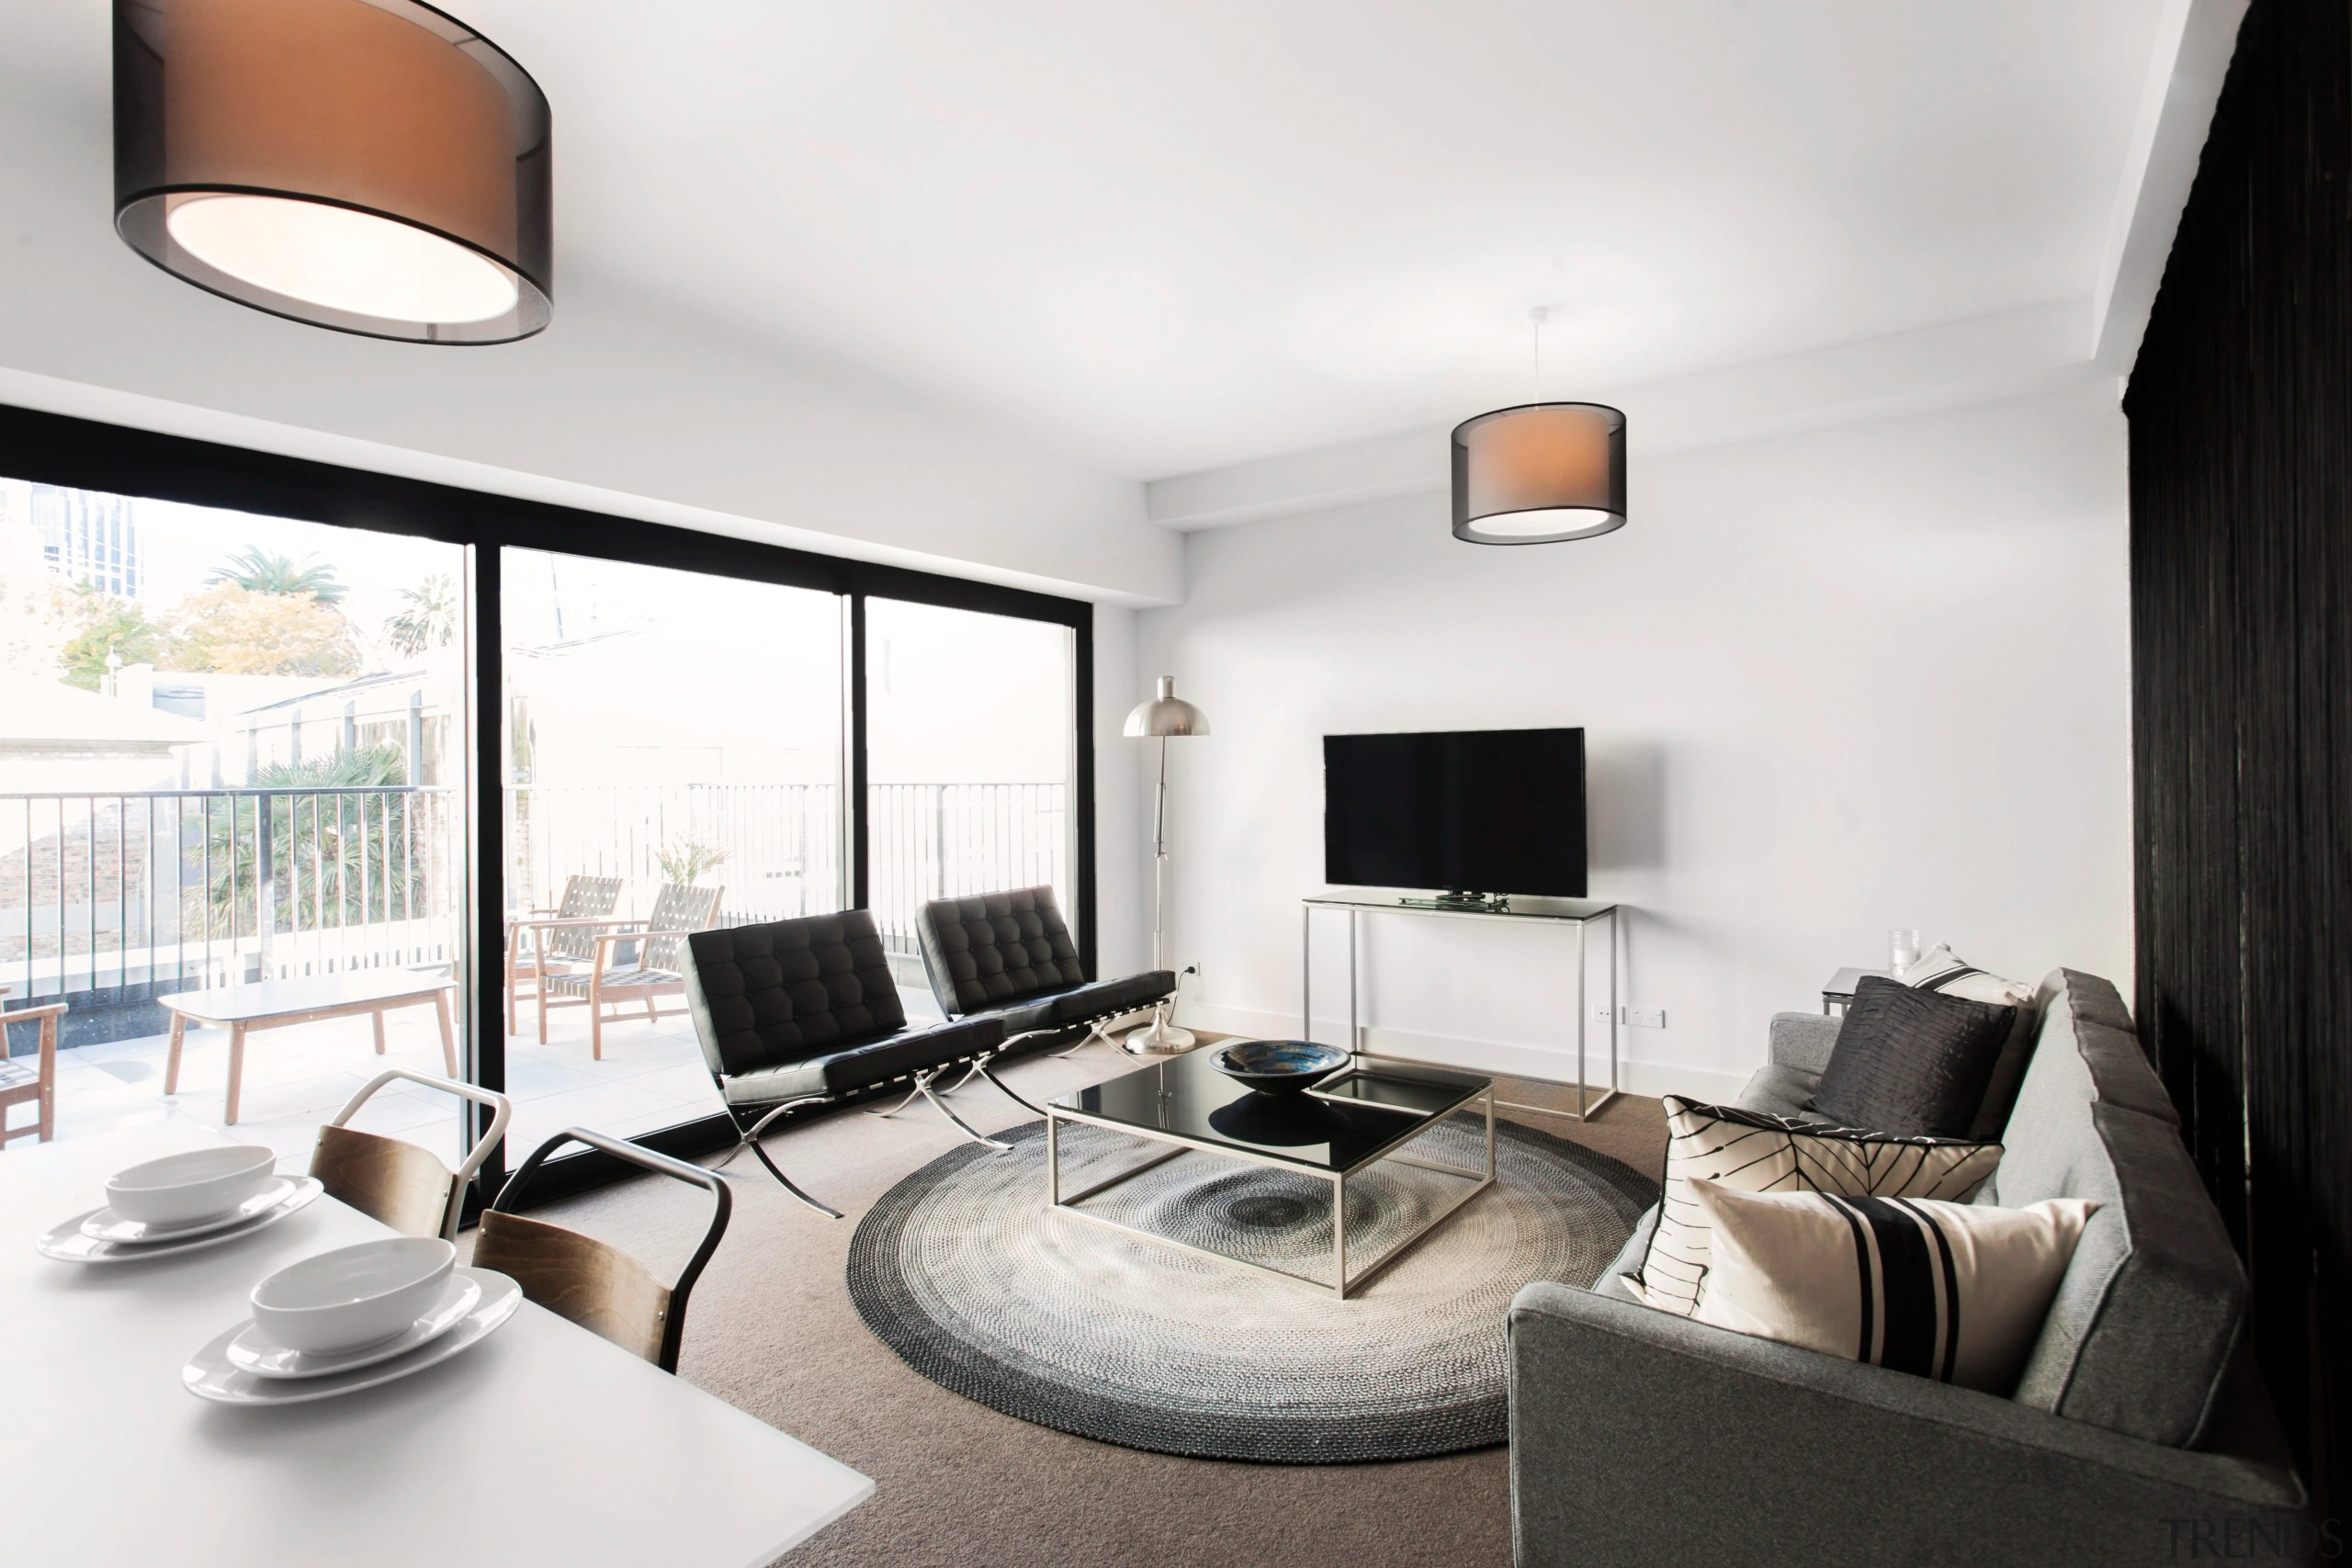 new york loft style living room best white paint color for located in close proximity to downtown restaurants trends shops and supermarkets parking the auckland waterfront block 7 offers apartments inspired by art deco period